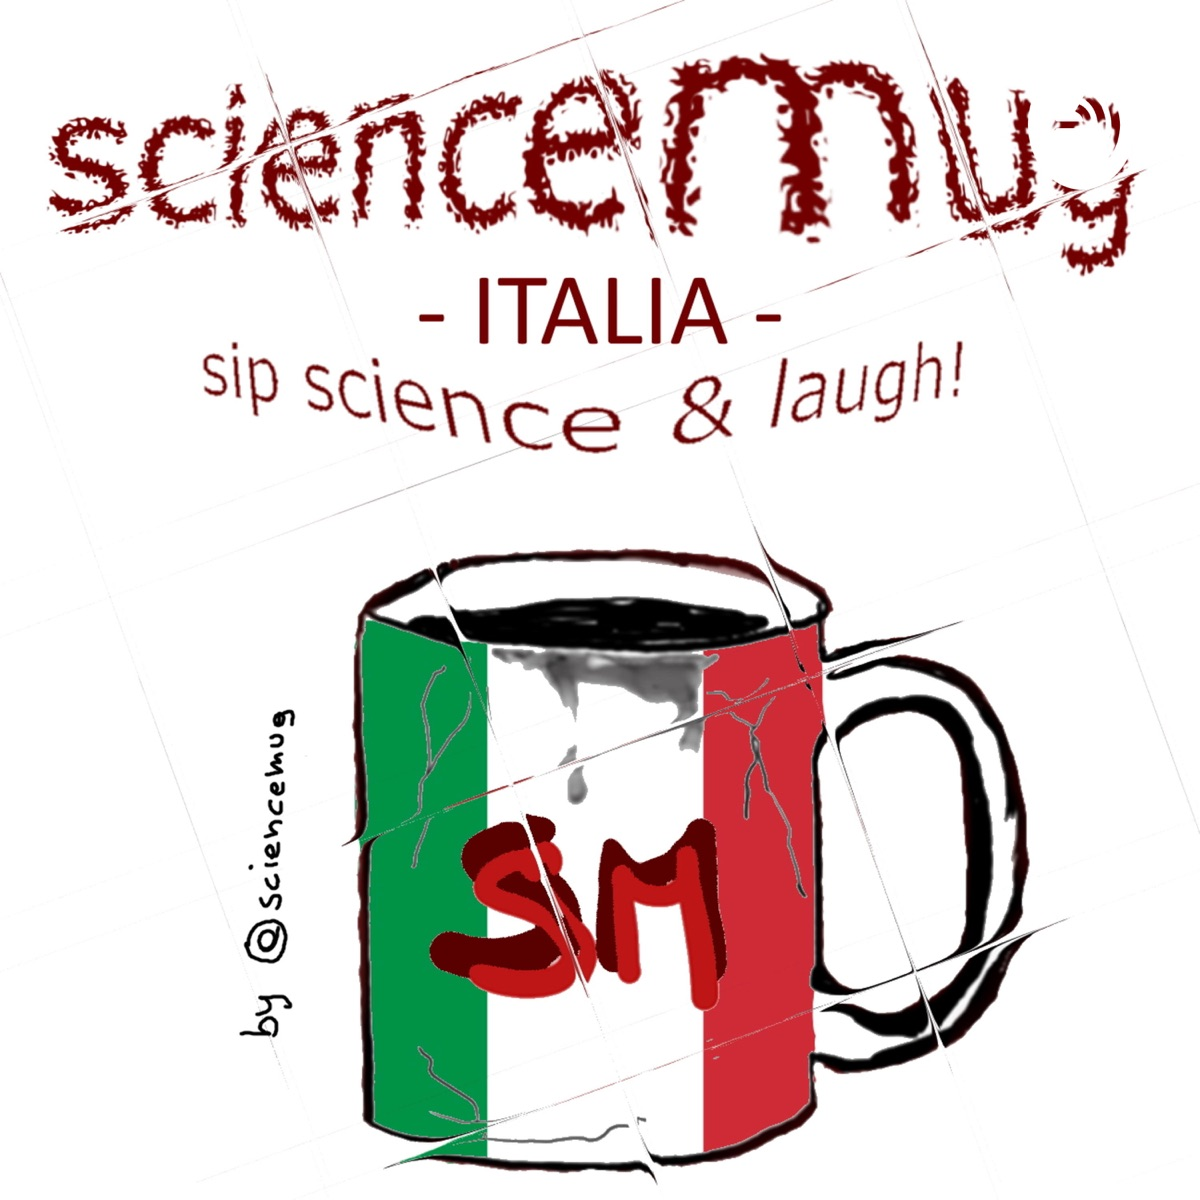 @sciencemug ITALIA